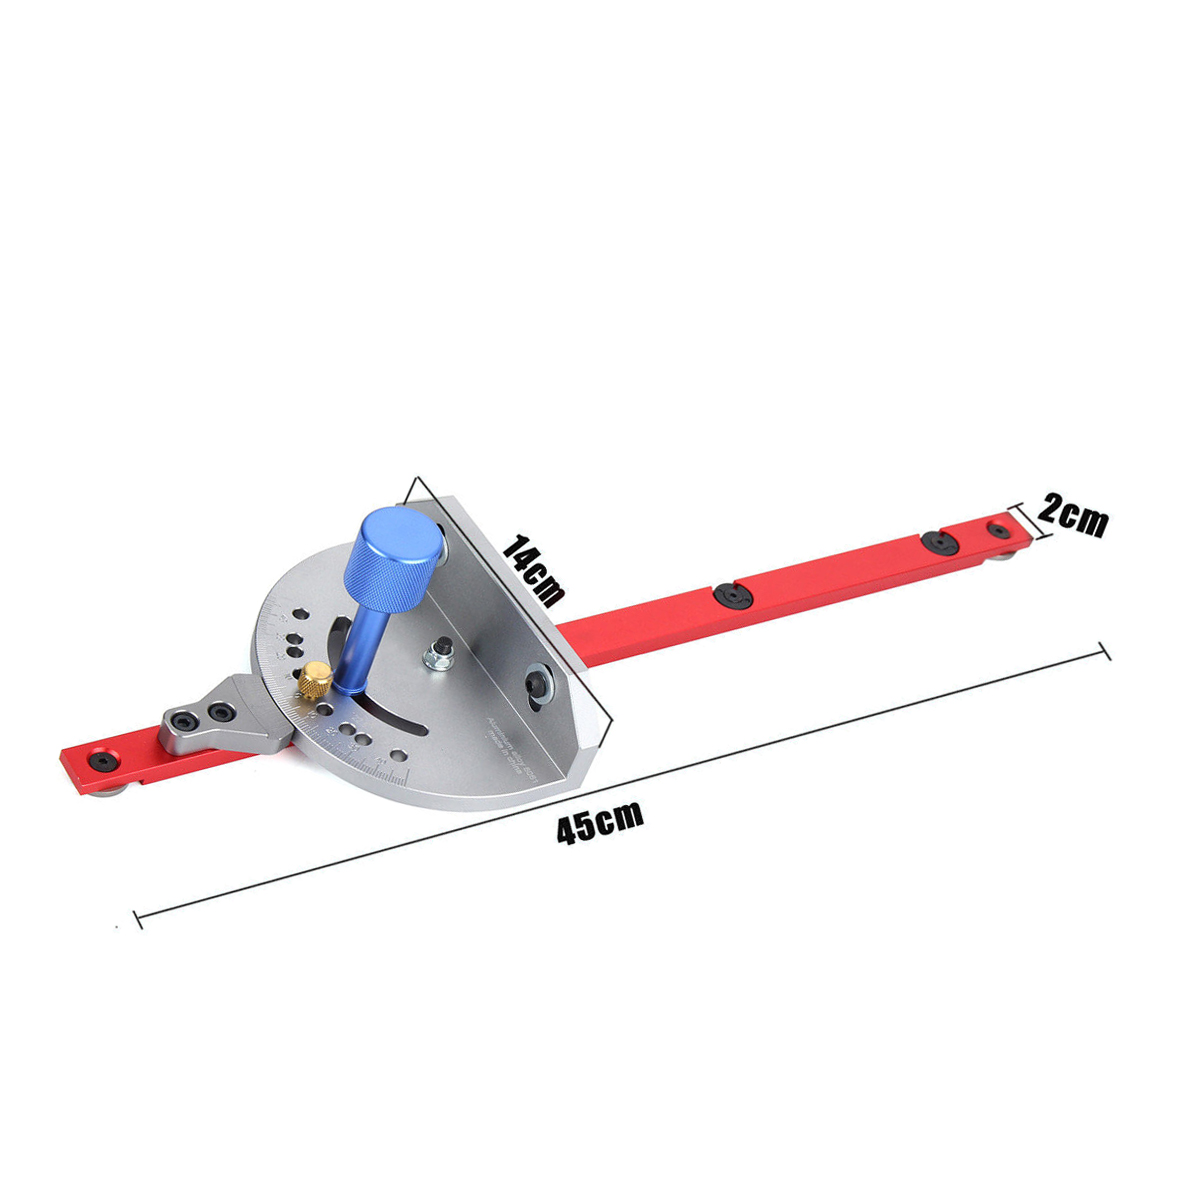 Miter Gauge Carpentry Tool For Bandsaw Table Saw Fence Cut Woodworking Guide Cutting Woodworking Tool  2019 NEWMiter Gauge Carpentry Tool For Bandsaw Table Saw Fence Cut Woodworking Guide Cutting Woodworking Tool  2019 NEW